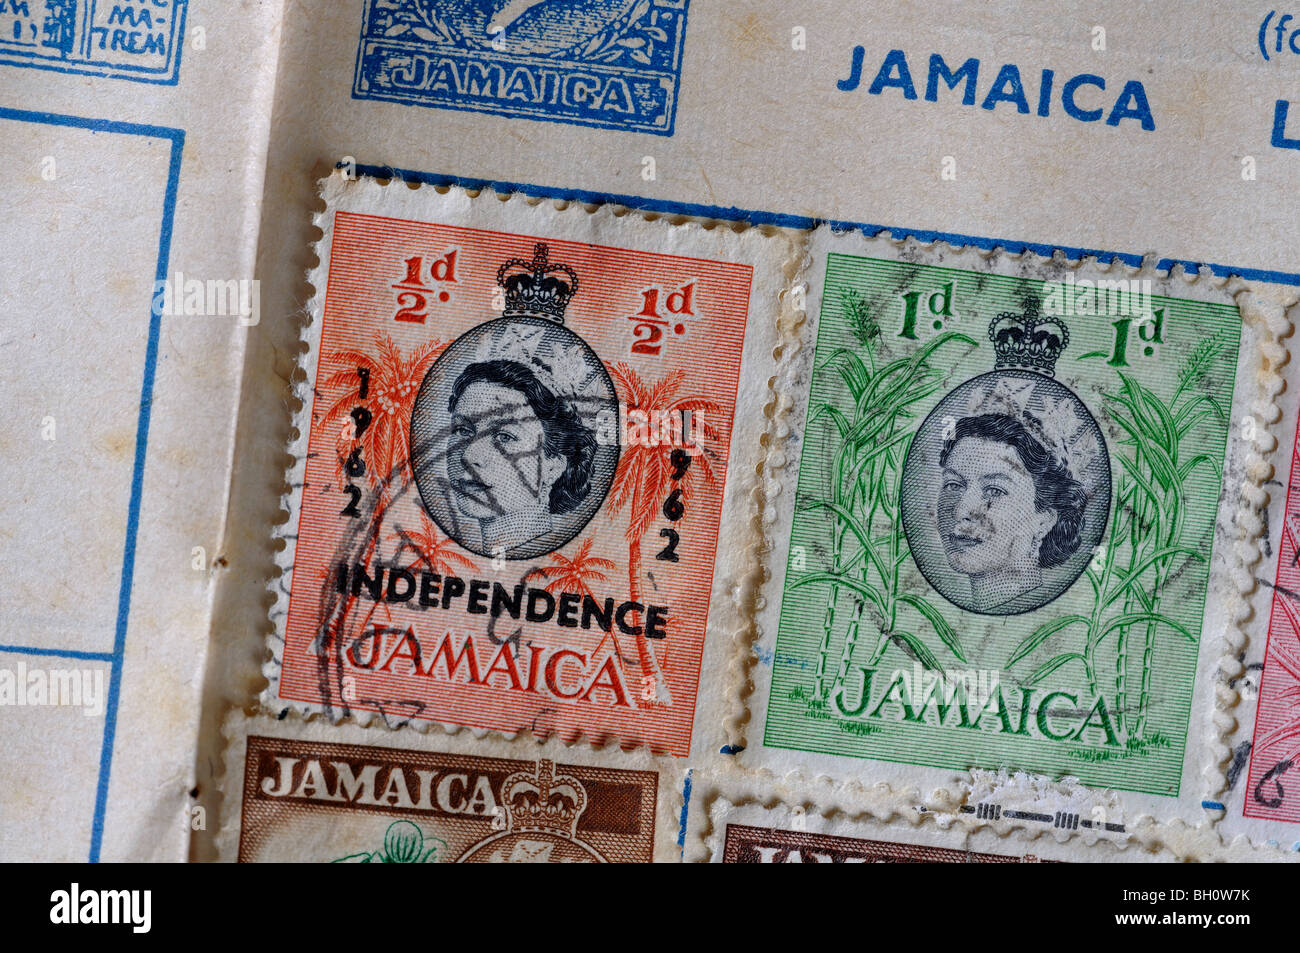 Jamaica postage stamps in stamp album - Stock Image